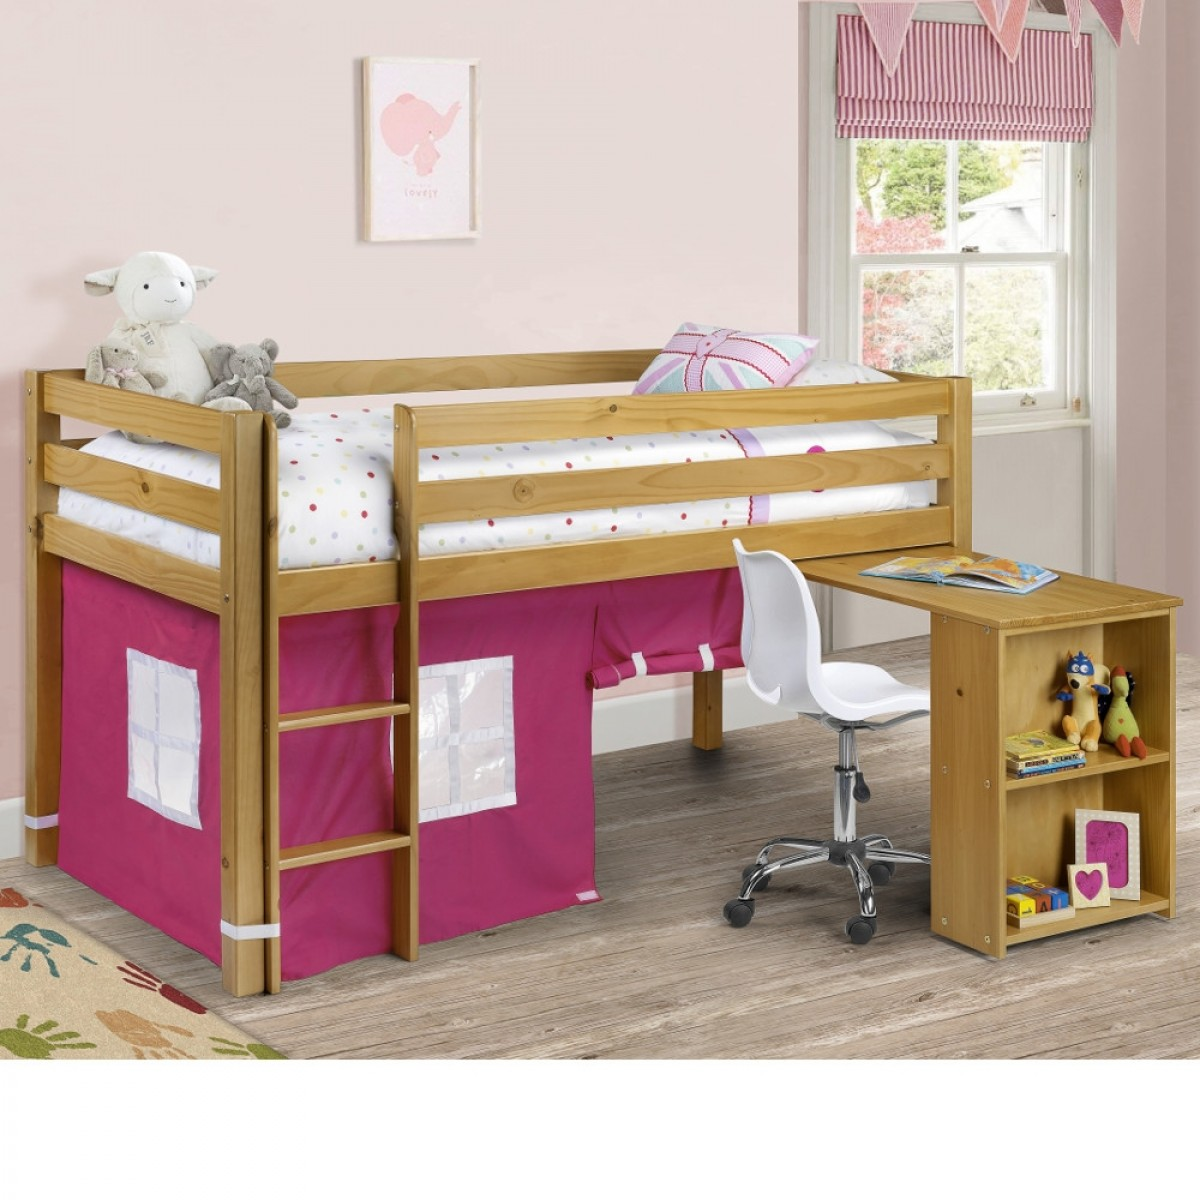 Wendy Solid Pine Mid Sleeper with Pink Tent